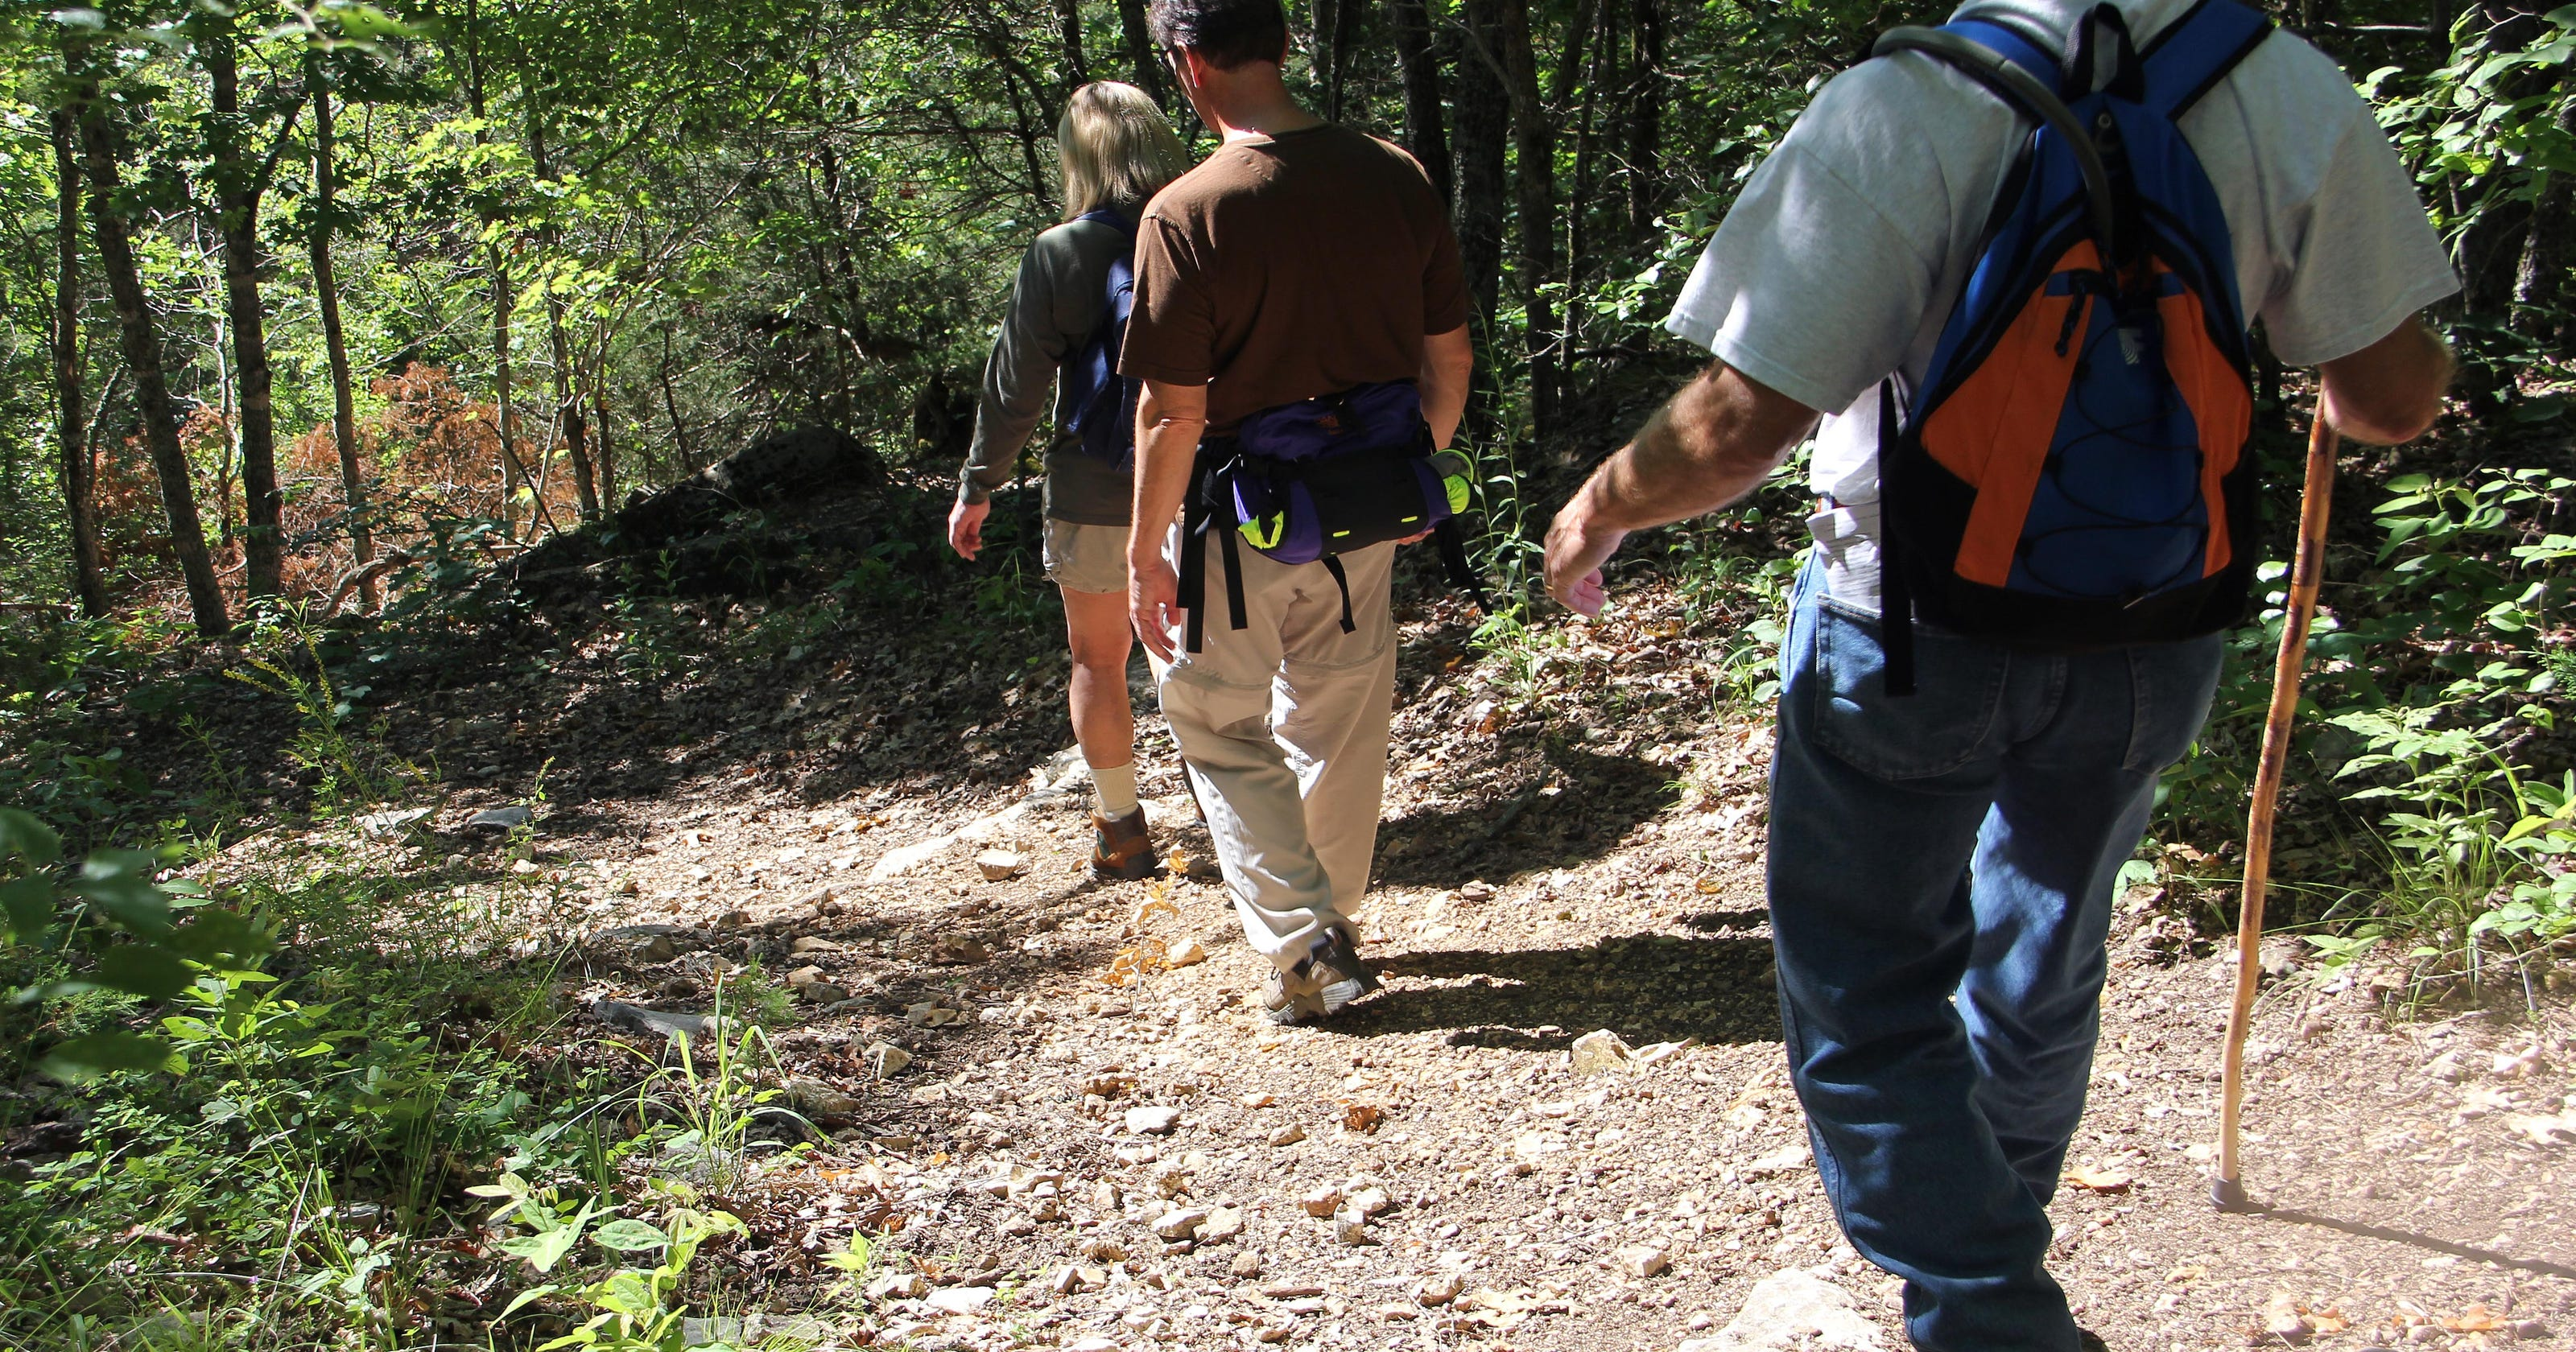 National Trails Day: Here are 5 great hikes close to Springfield